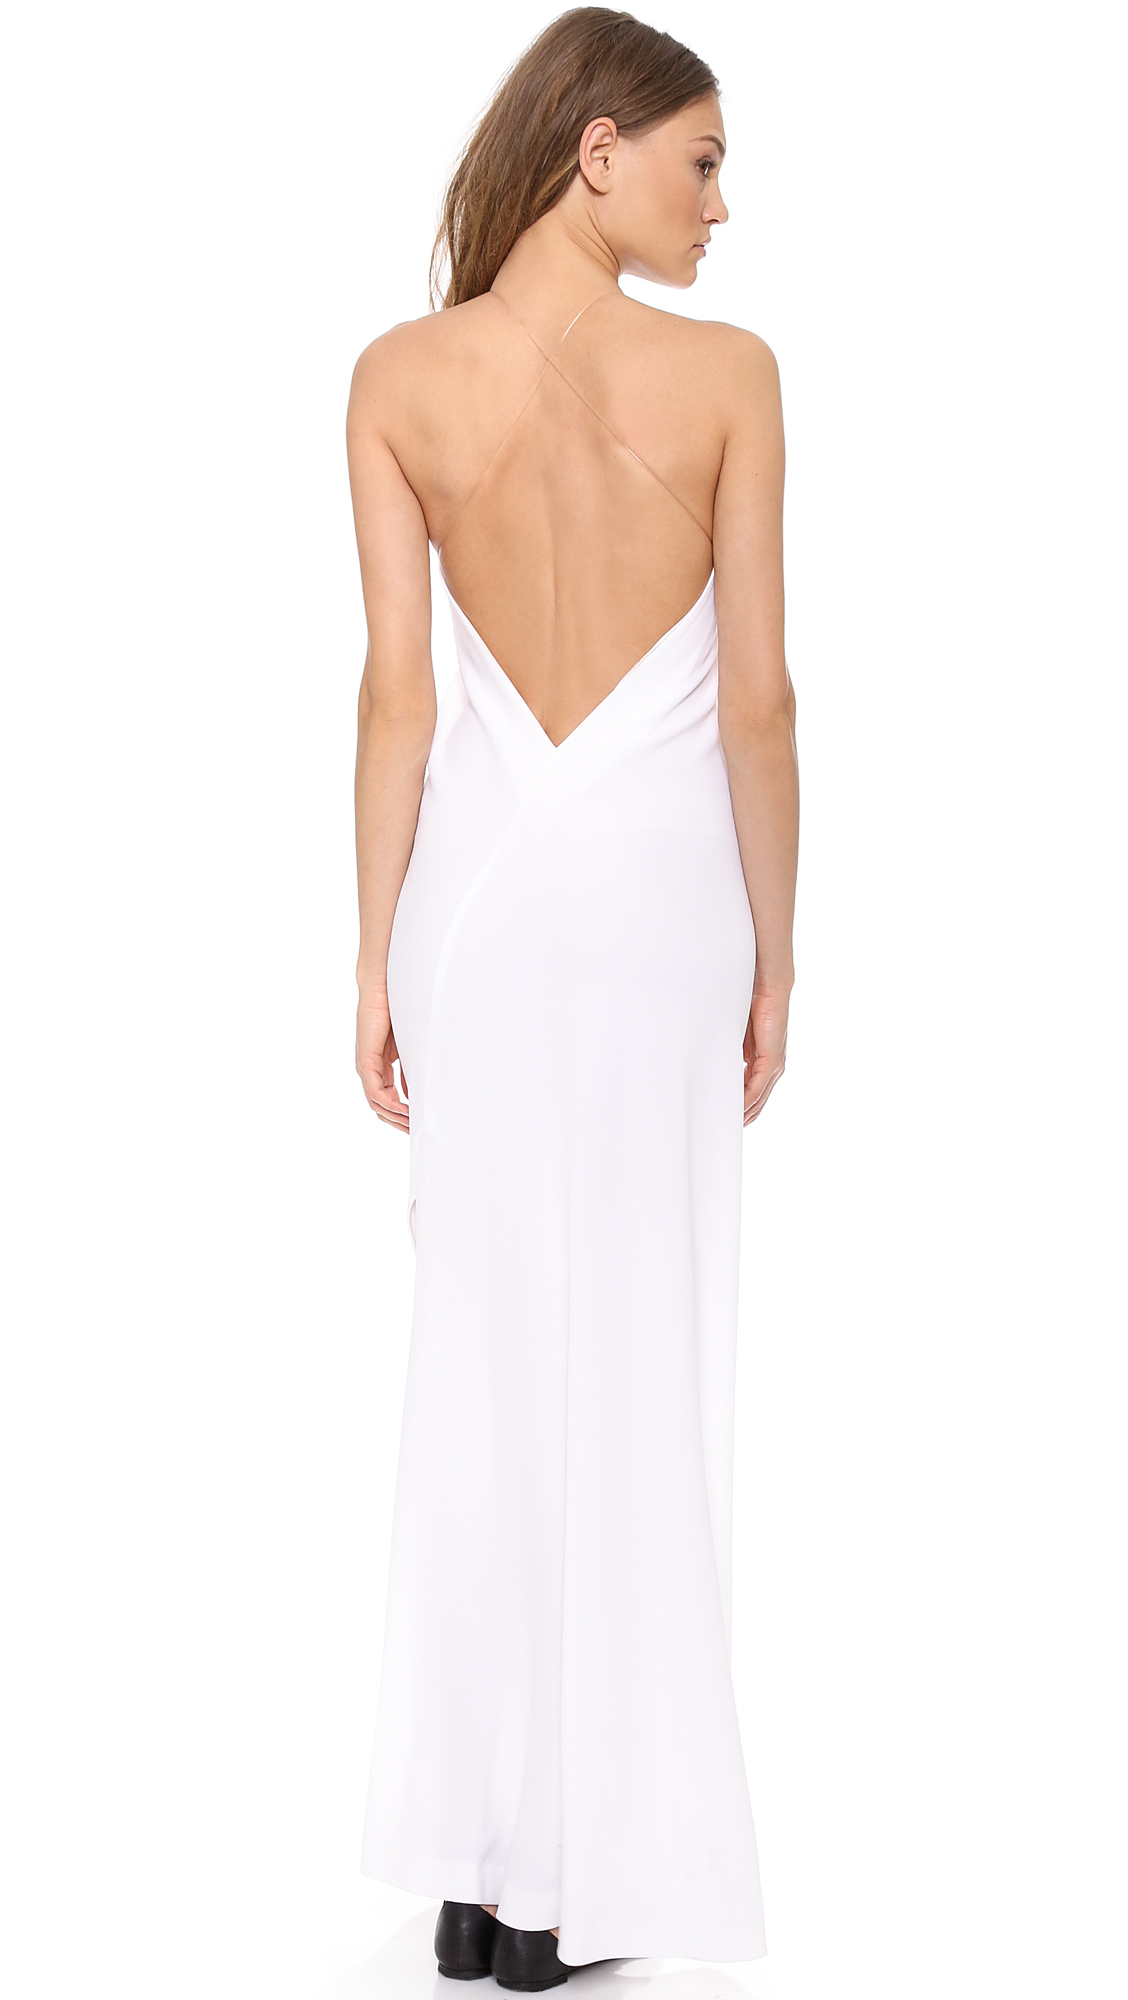 Dkny Illusion Maxi Dress White in White  Lyst